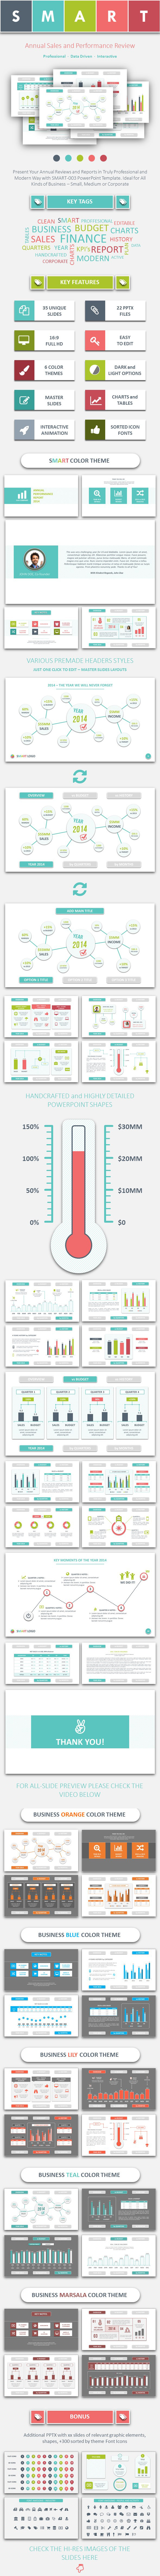 GraphicRiver SMART-003 Annual Review PowerPoint Template 10095613